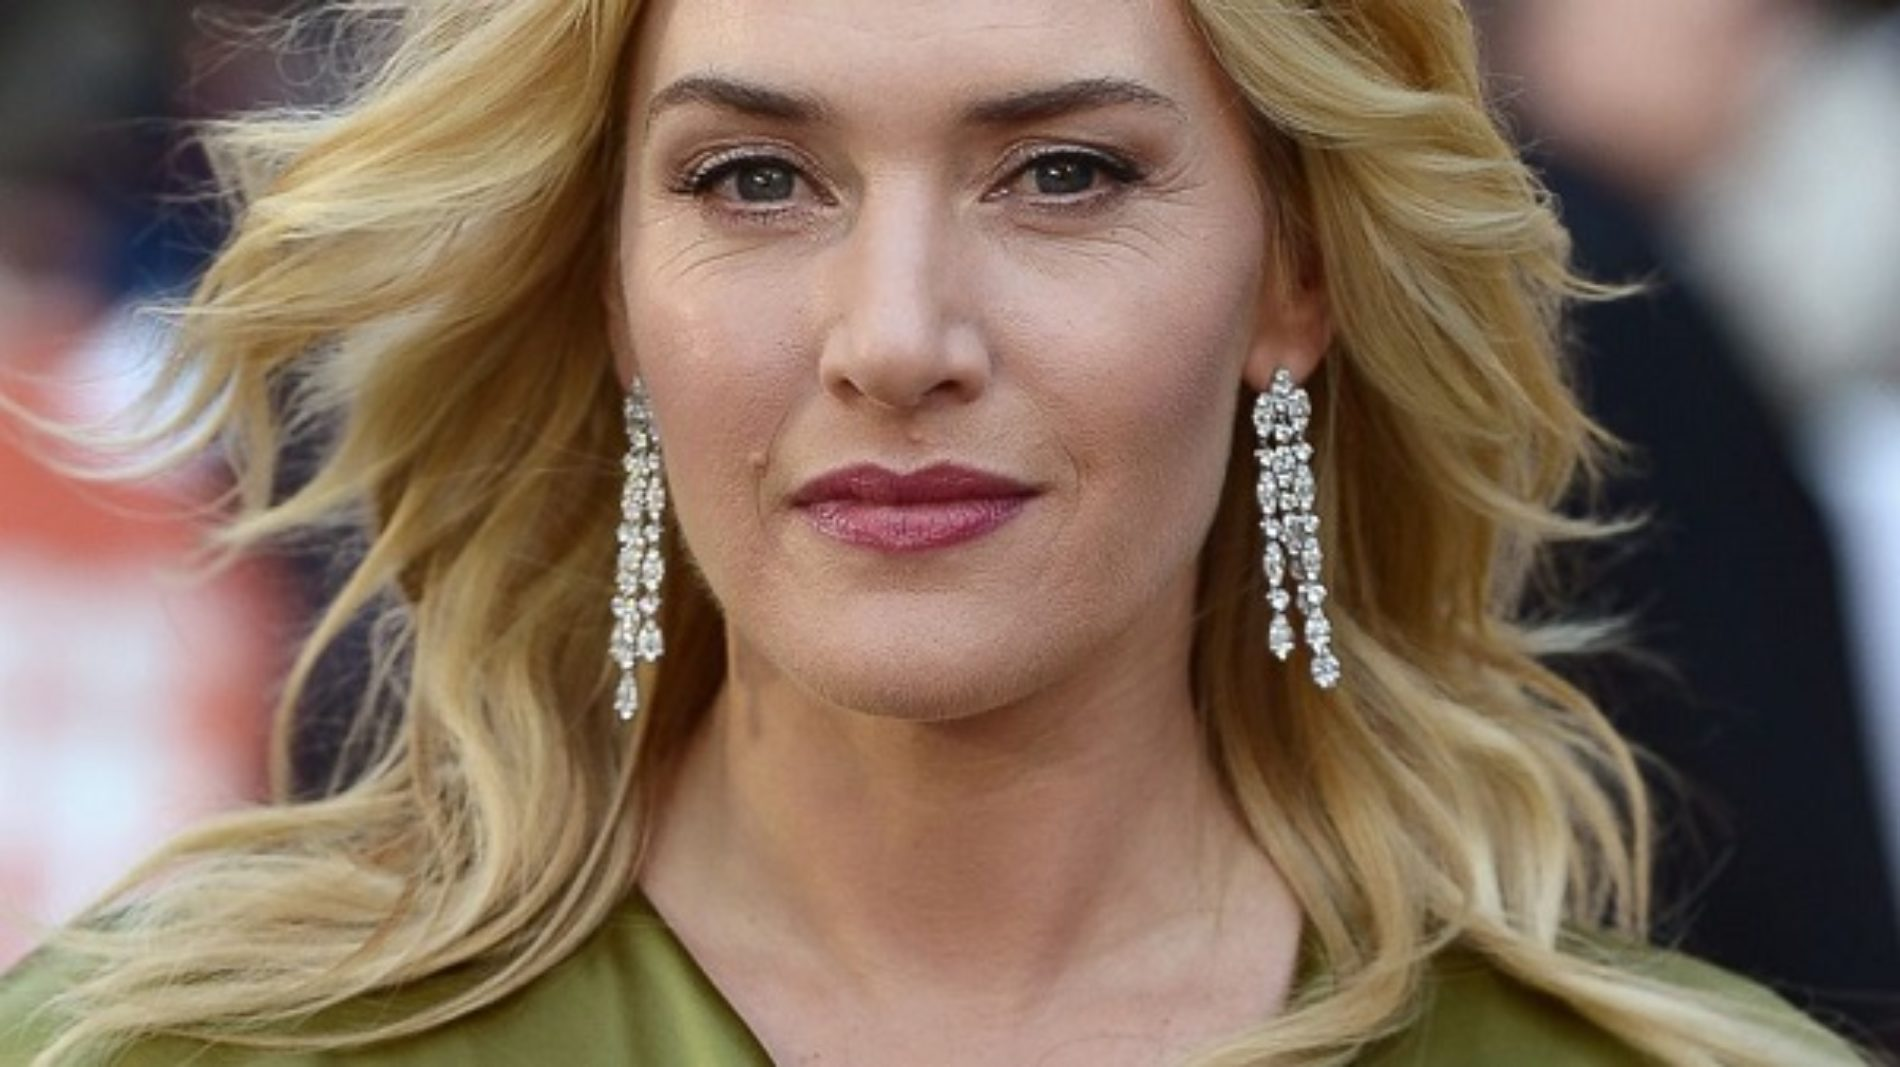 Kate Winslet's response to her 7-year-old saying he might be gay